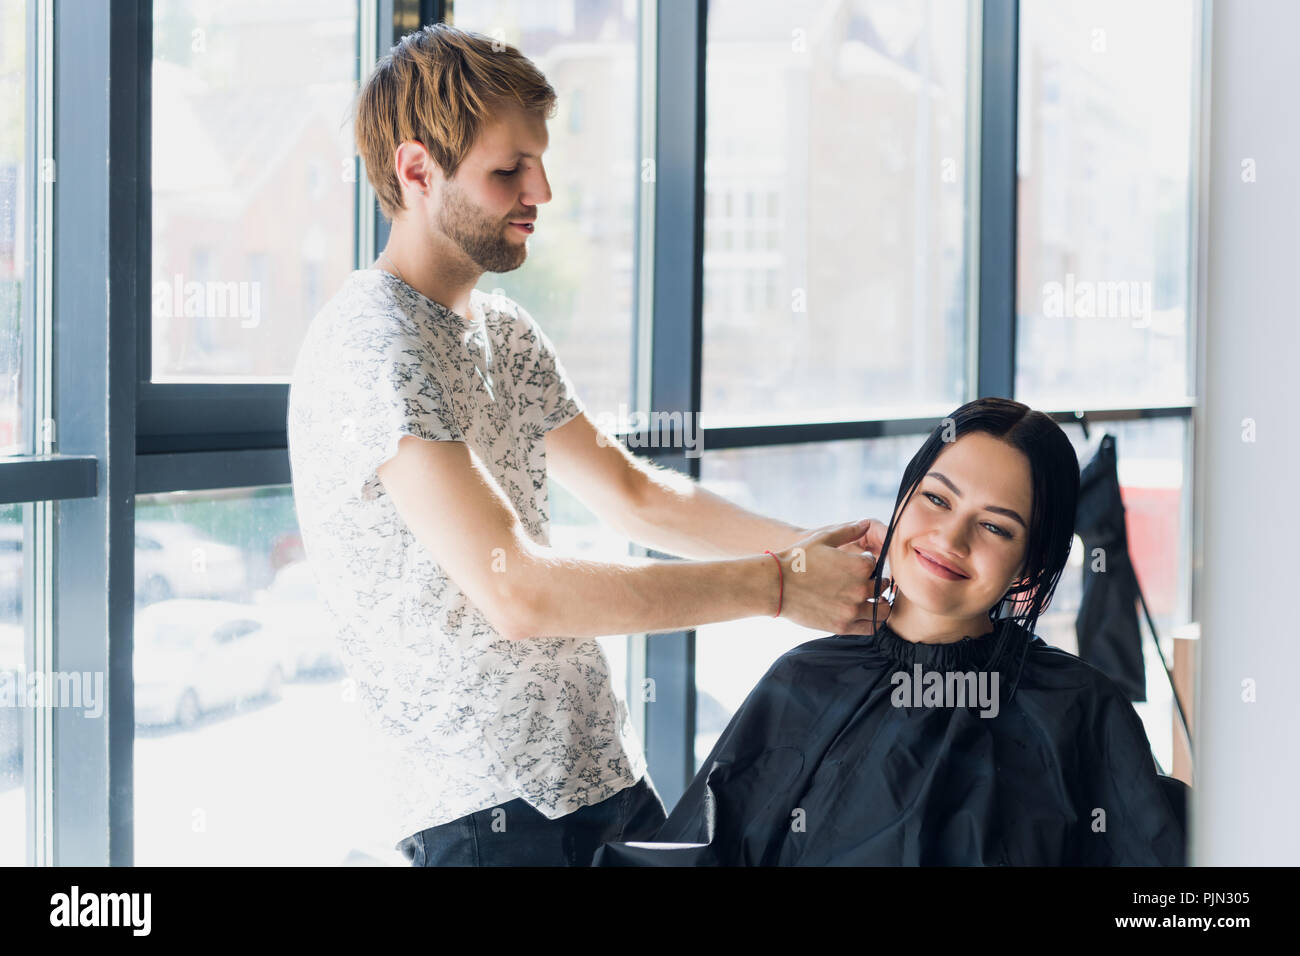 A woman in a hairdressing salon waiting to see the results looking in a mirror, smiling and talking with artist - Stock Image